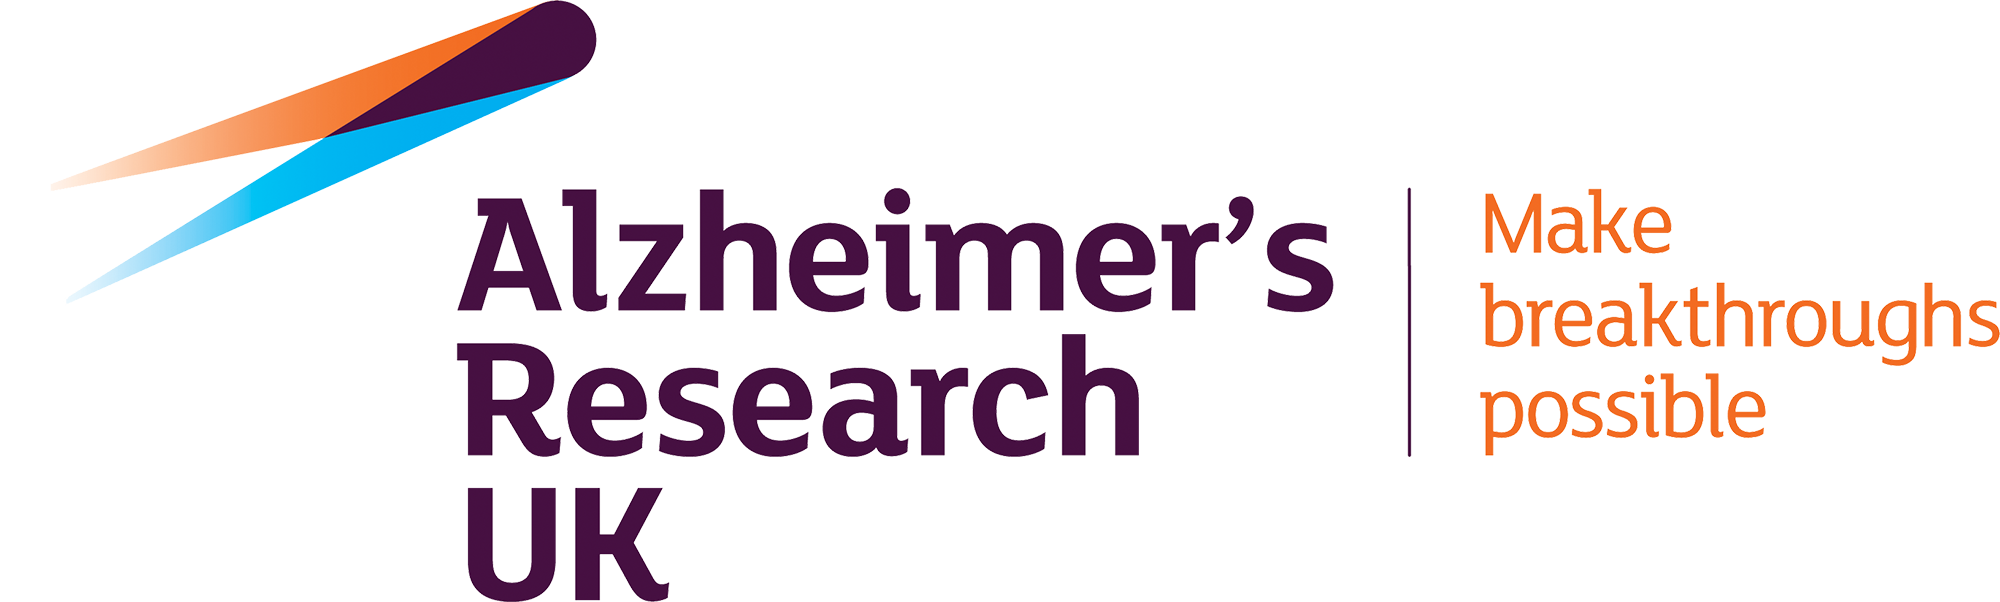 alzheimers research uk logo